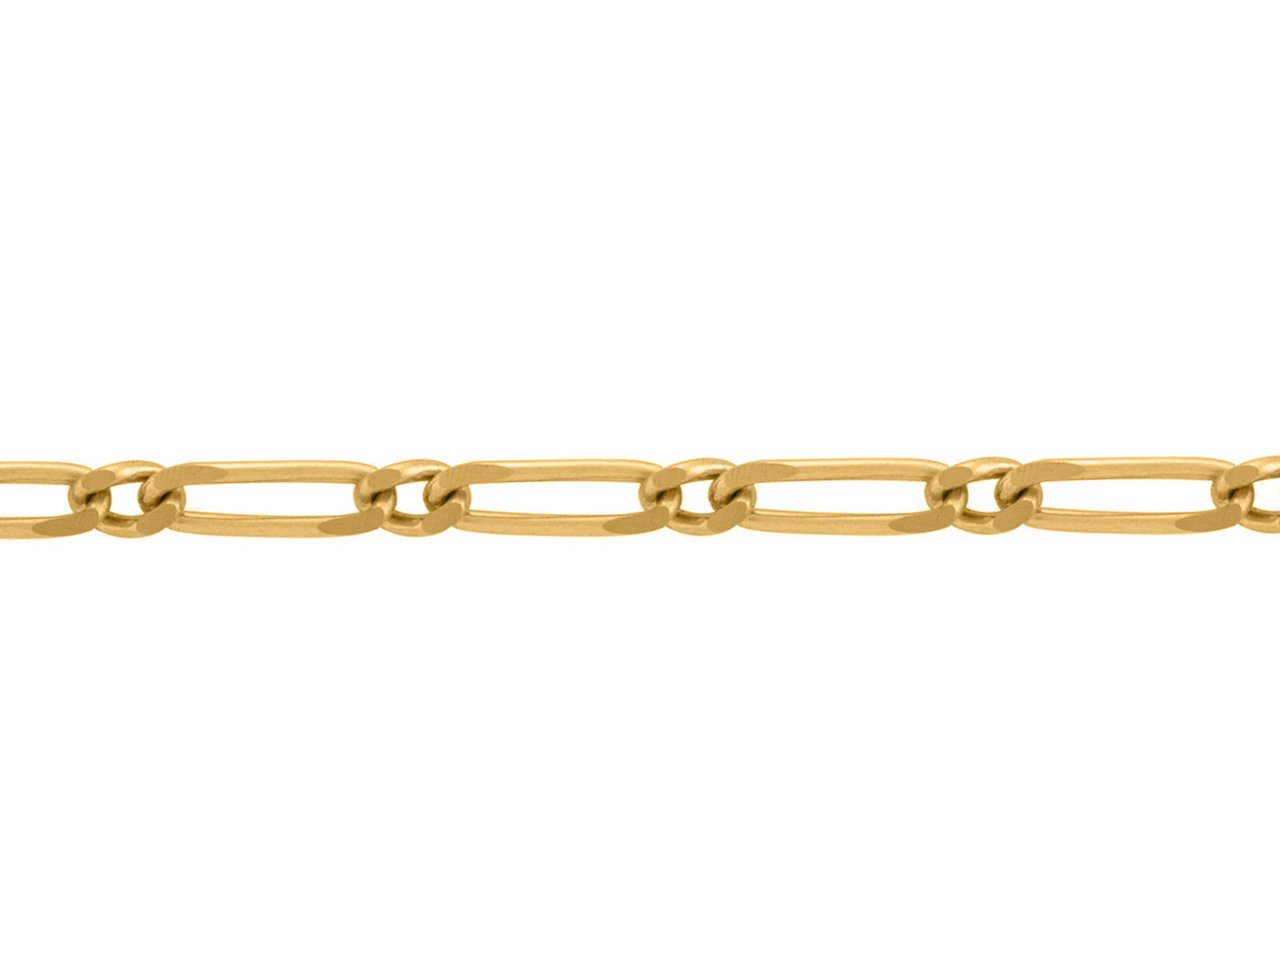 Chaine Figaro alternée 1/1, 1,5 mm, Or jaune 18k. Réf. 00894